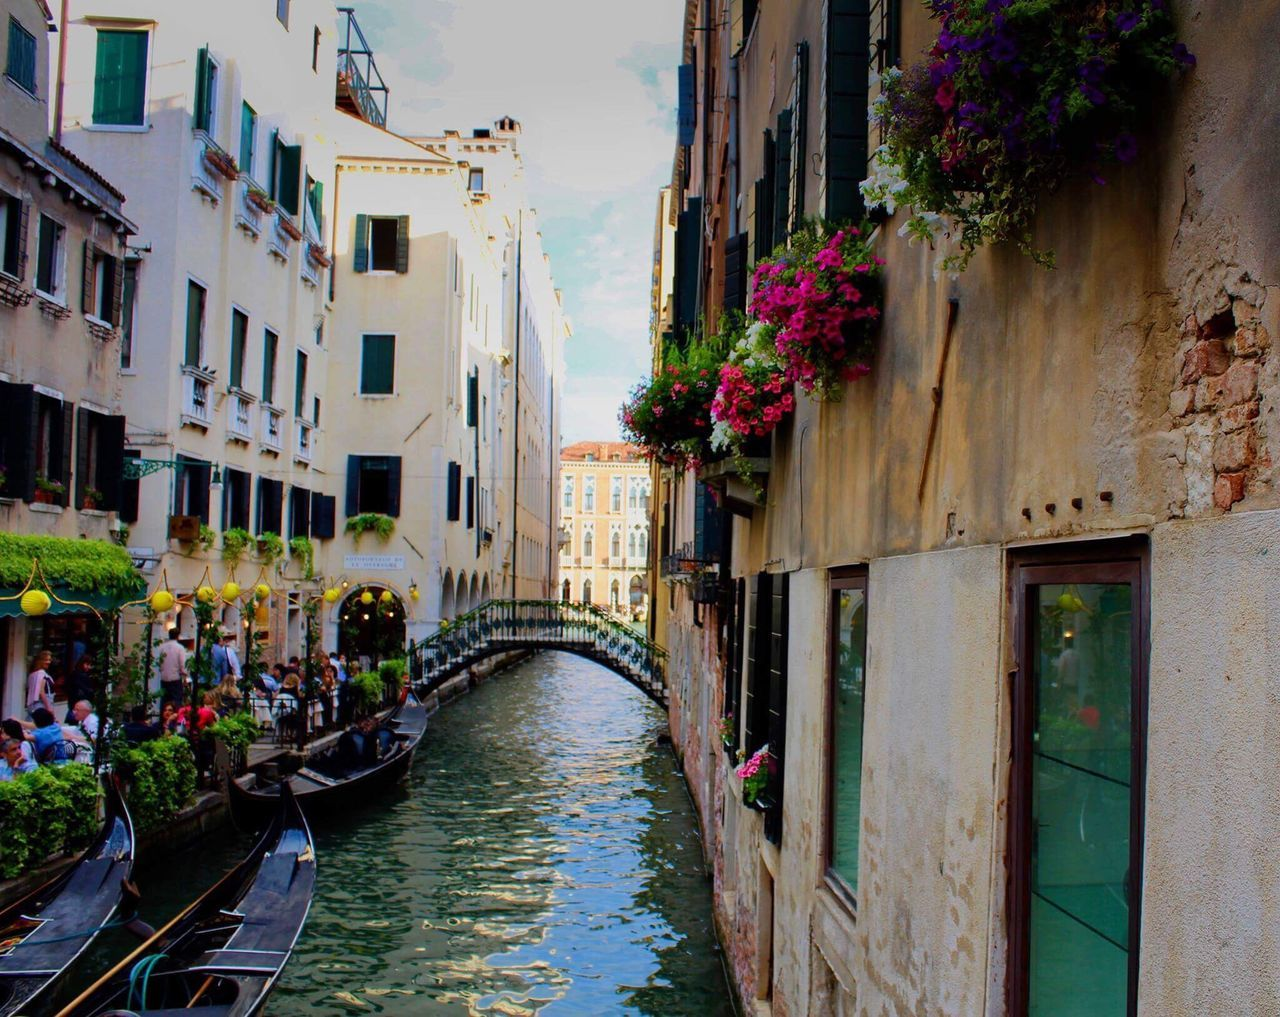 architecture, canal, building exterior, built structure, old town, day, gondola - traditional boat, travel destinations, water, outdoors, nautical vessel, no people